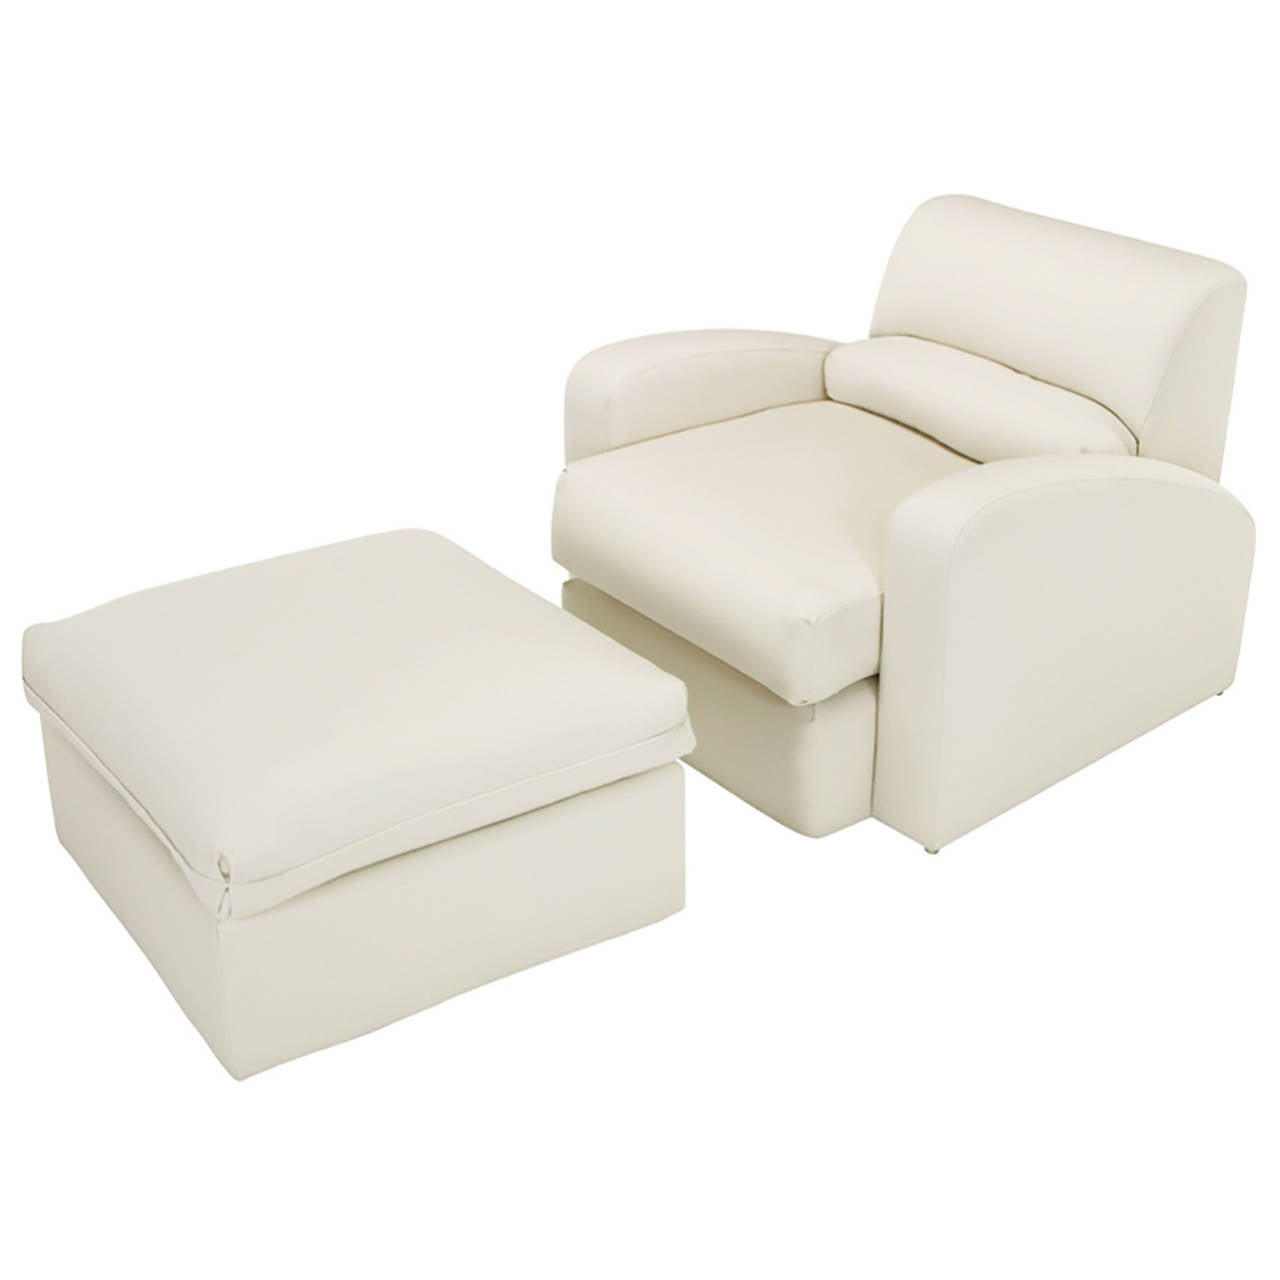 Jay Spectre Steamer Lounge Chair with Ottoman For Sale